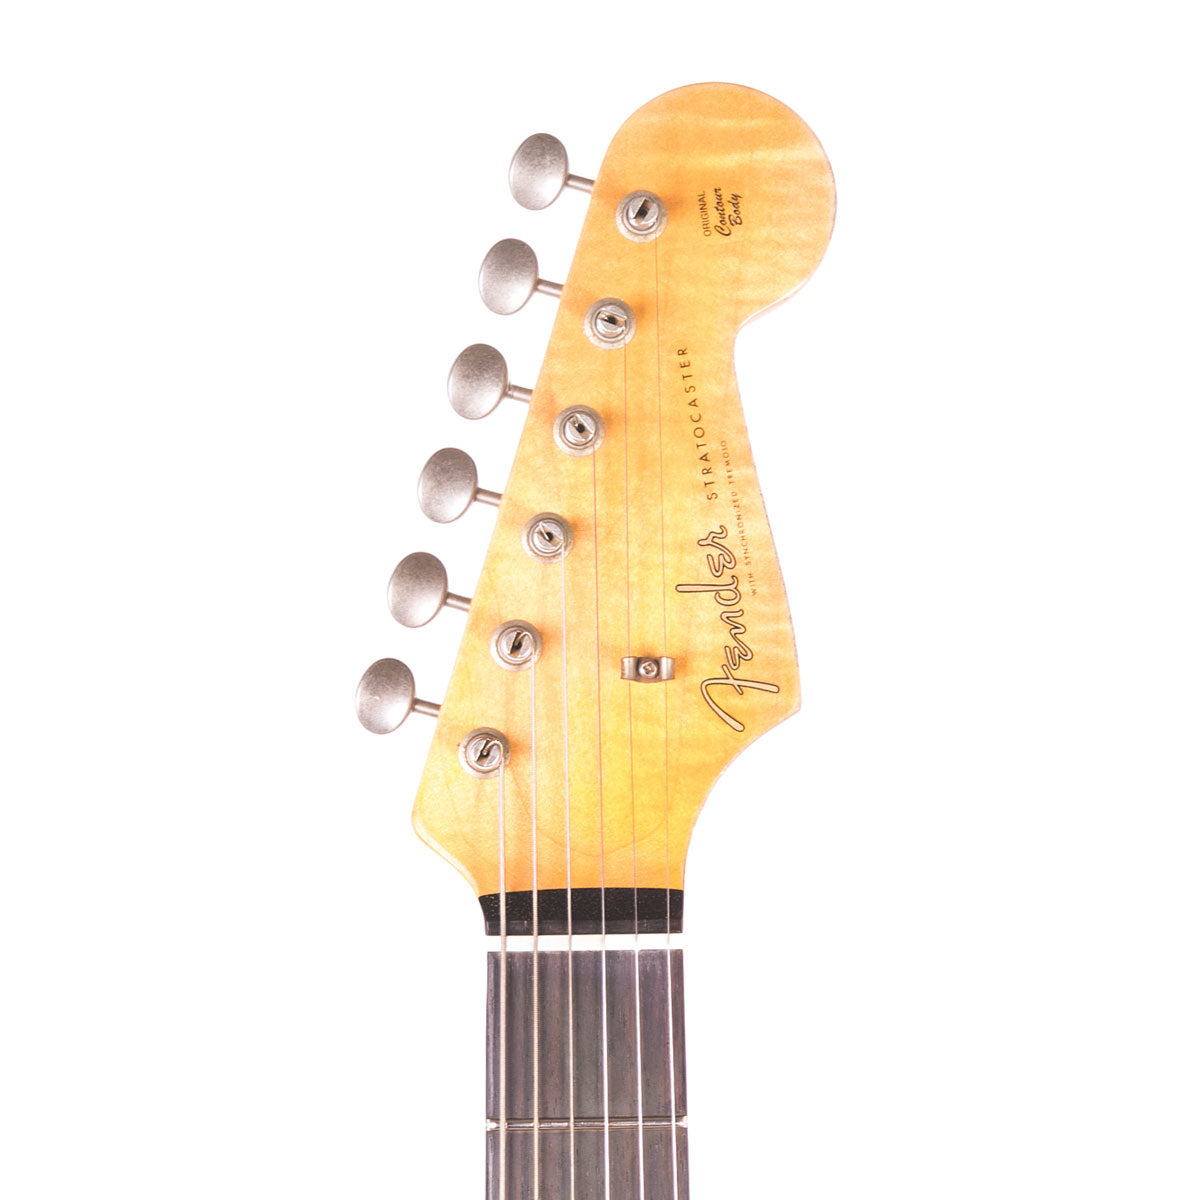 Fender Custom Shop Ltd NAMM 1960 Heavy Relic Stratocaster 3 Tone Sunburst - SALE PRICE | Lucky Fret Music Co.